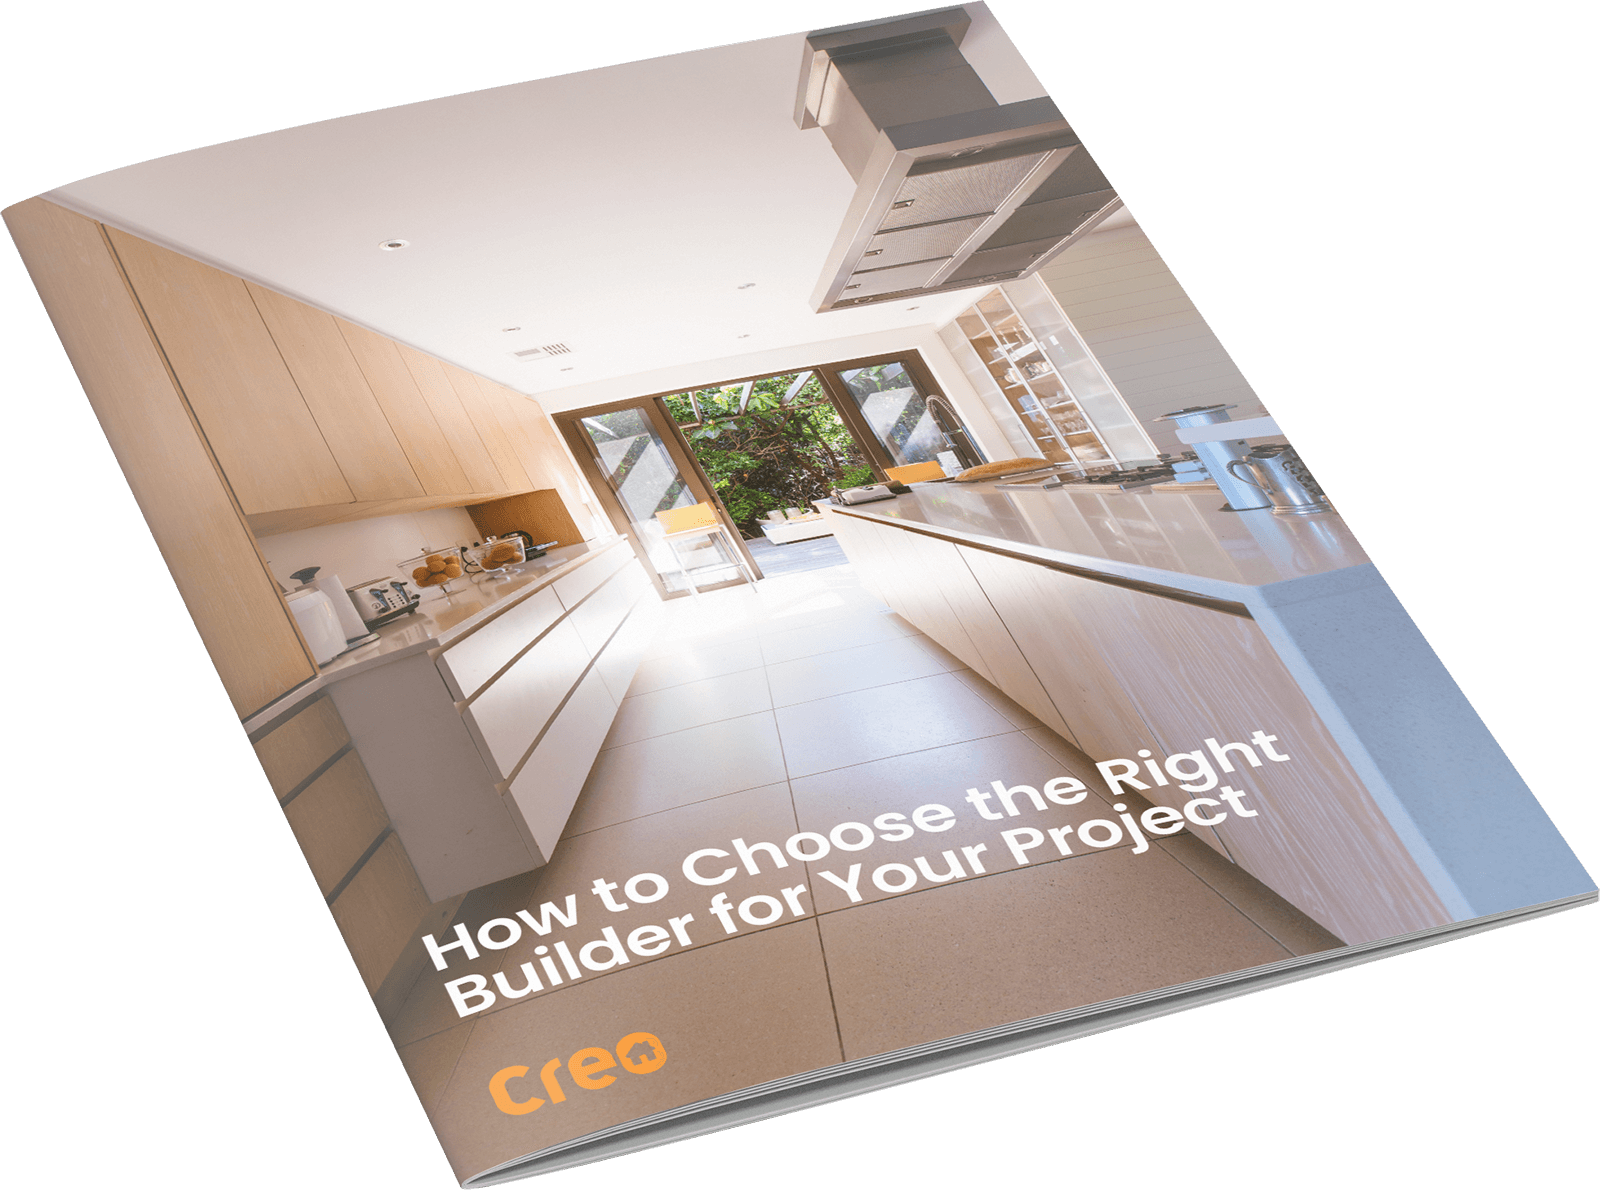 How to Choose the Right Builder for Your Project - A free guide by Creo Property in Bristol